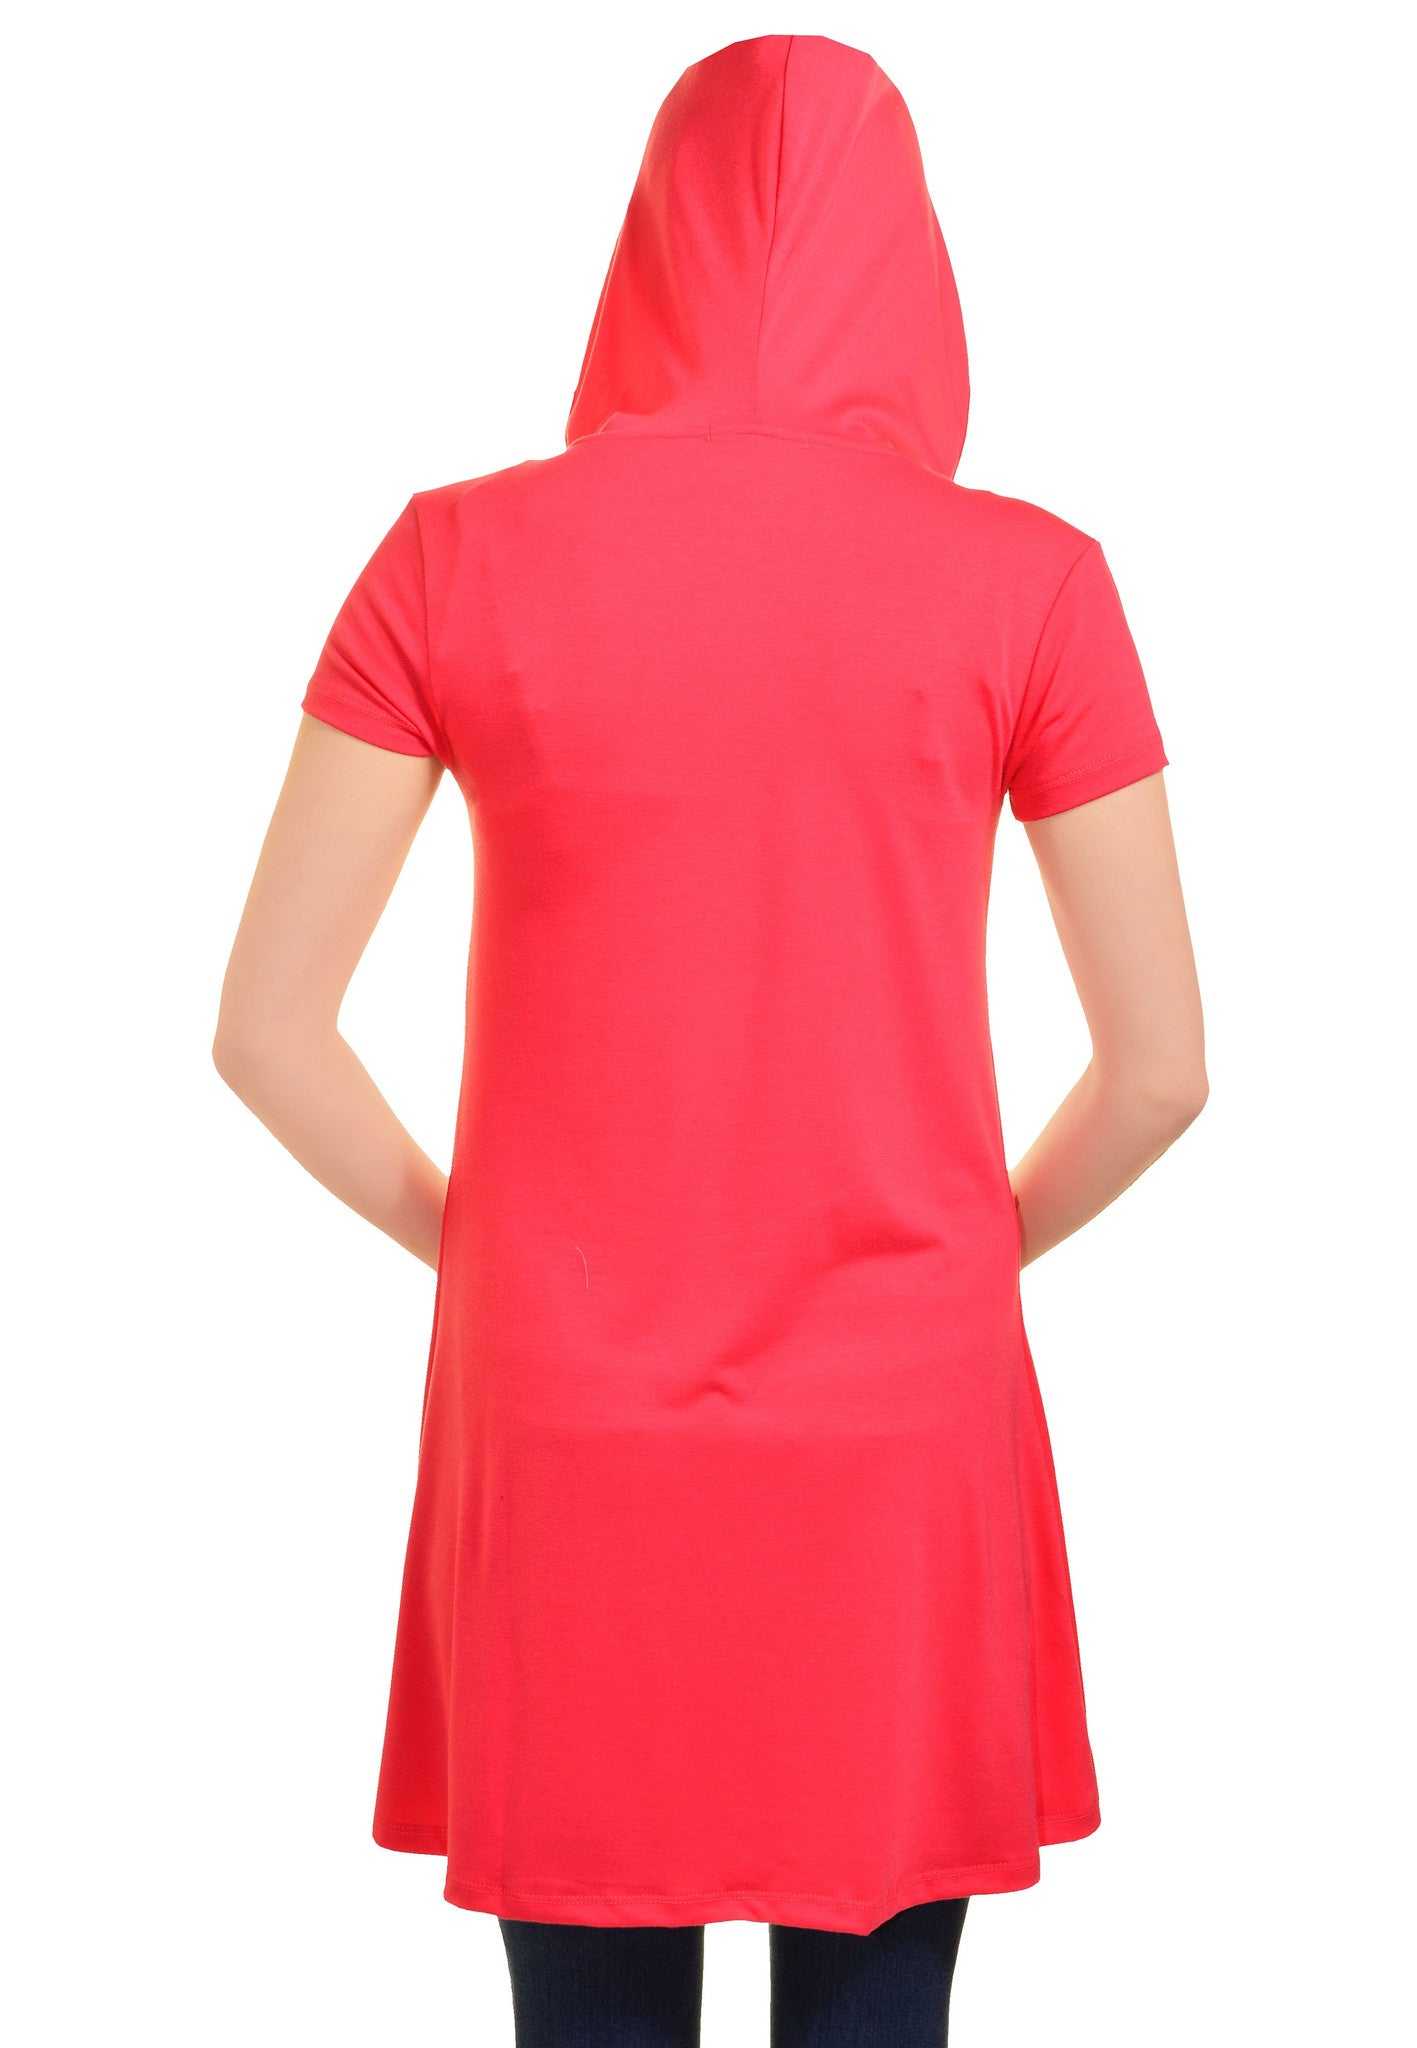 Ellie & Kate Hooded T-Shirt Dress (Coral Pink)